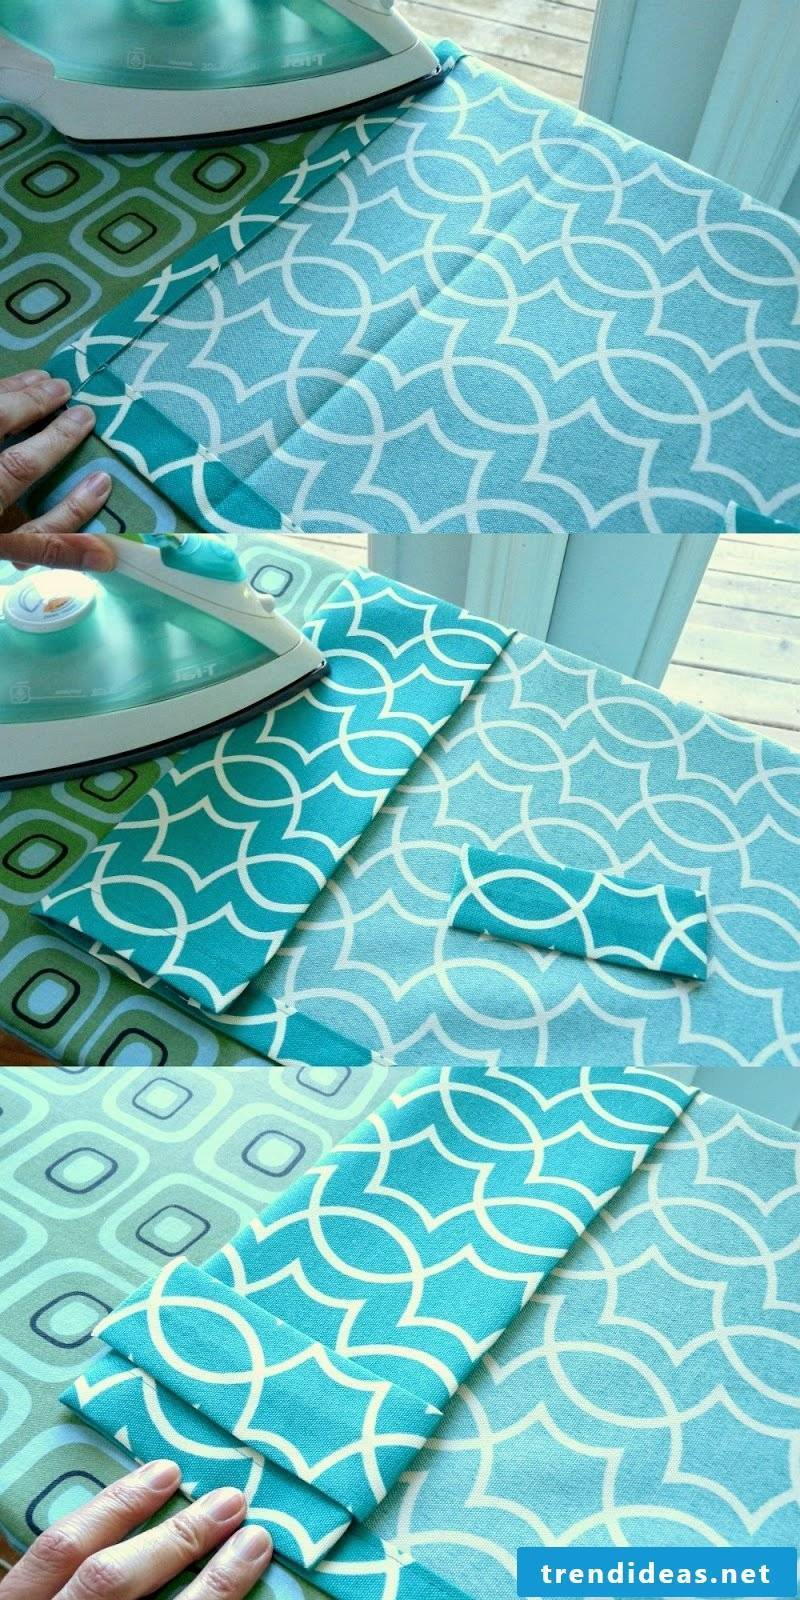 Sew curtains - step by step